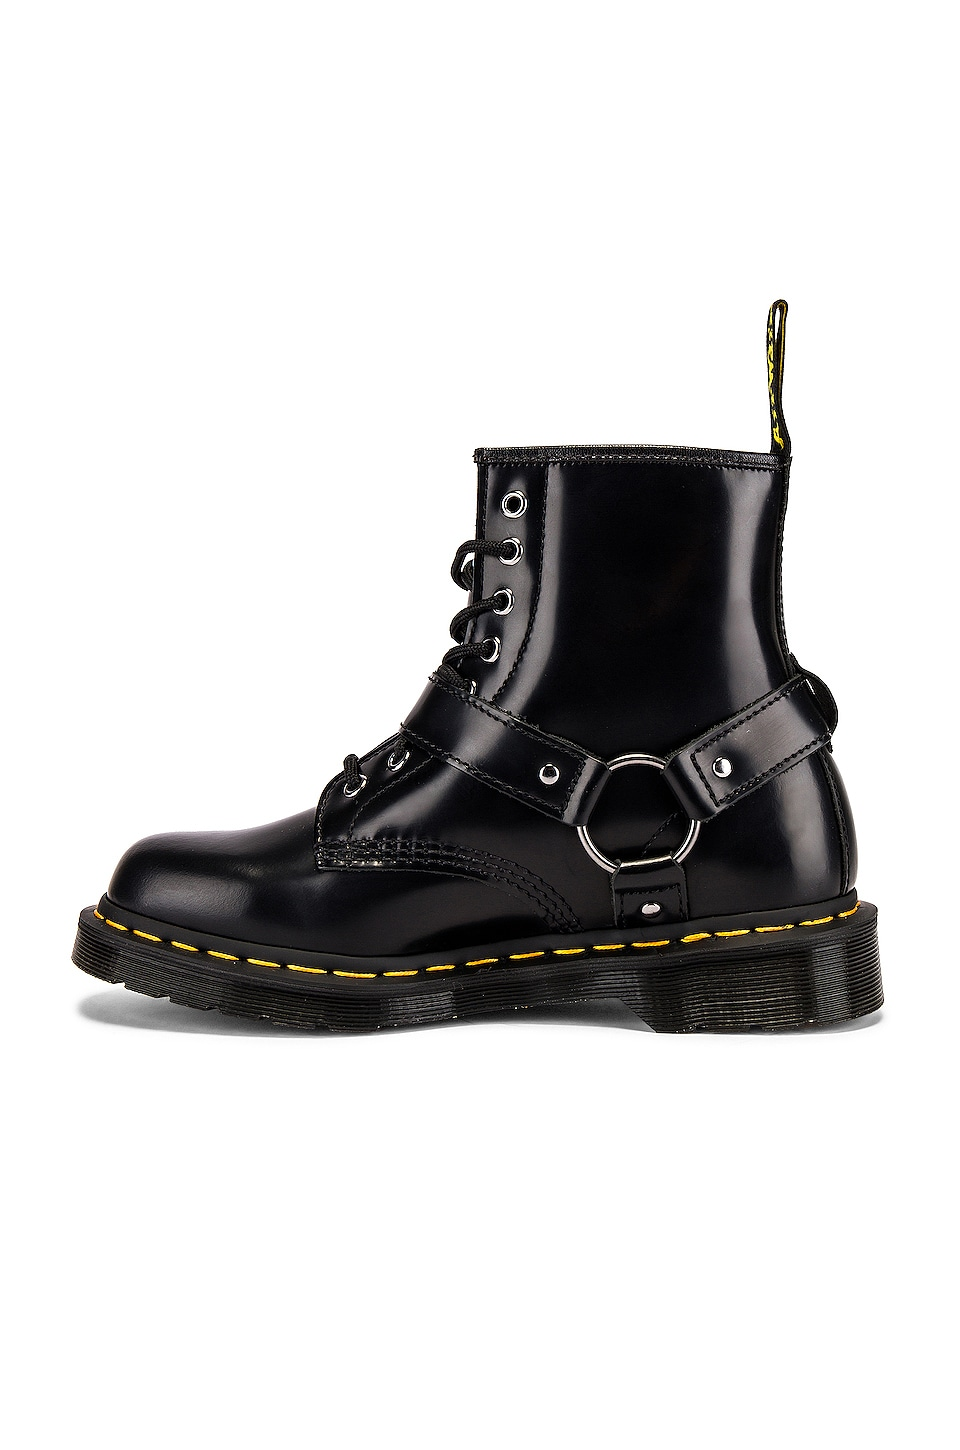 Dr. Martens Accessories 1460 Harness